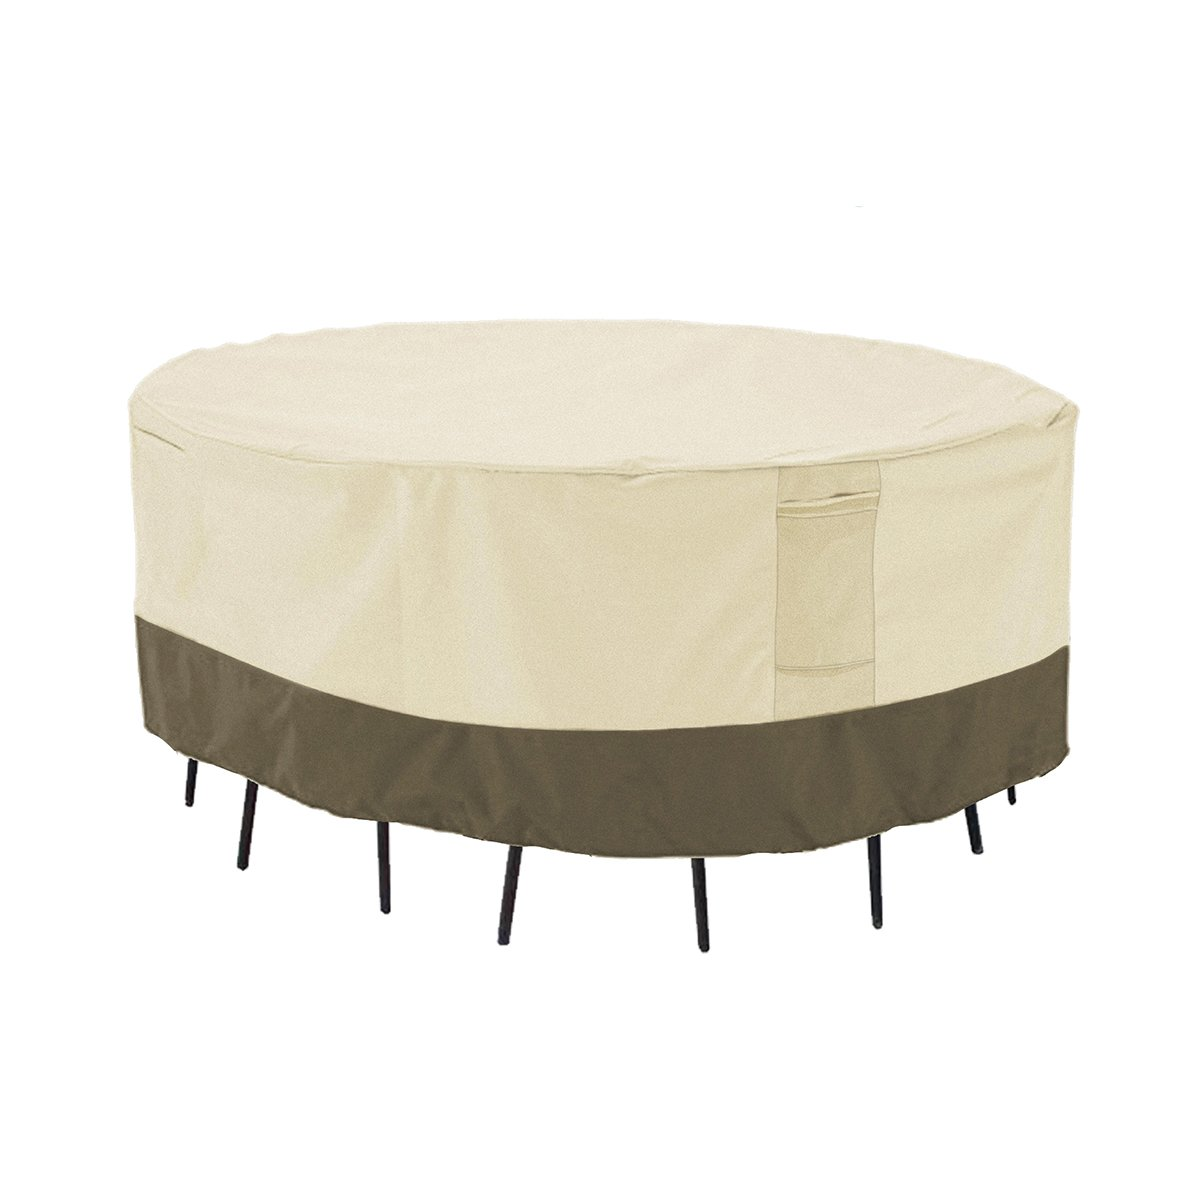 PHI VILLA Patio Round Table & Chair Set Cover, Durable Water Resistant Outdoor Furniture Cover with Pop-up Supporter, Medium